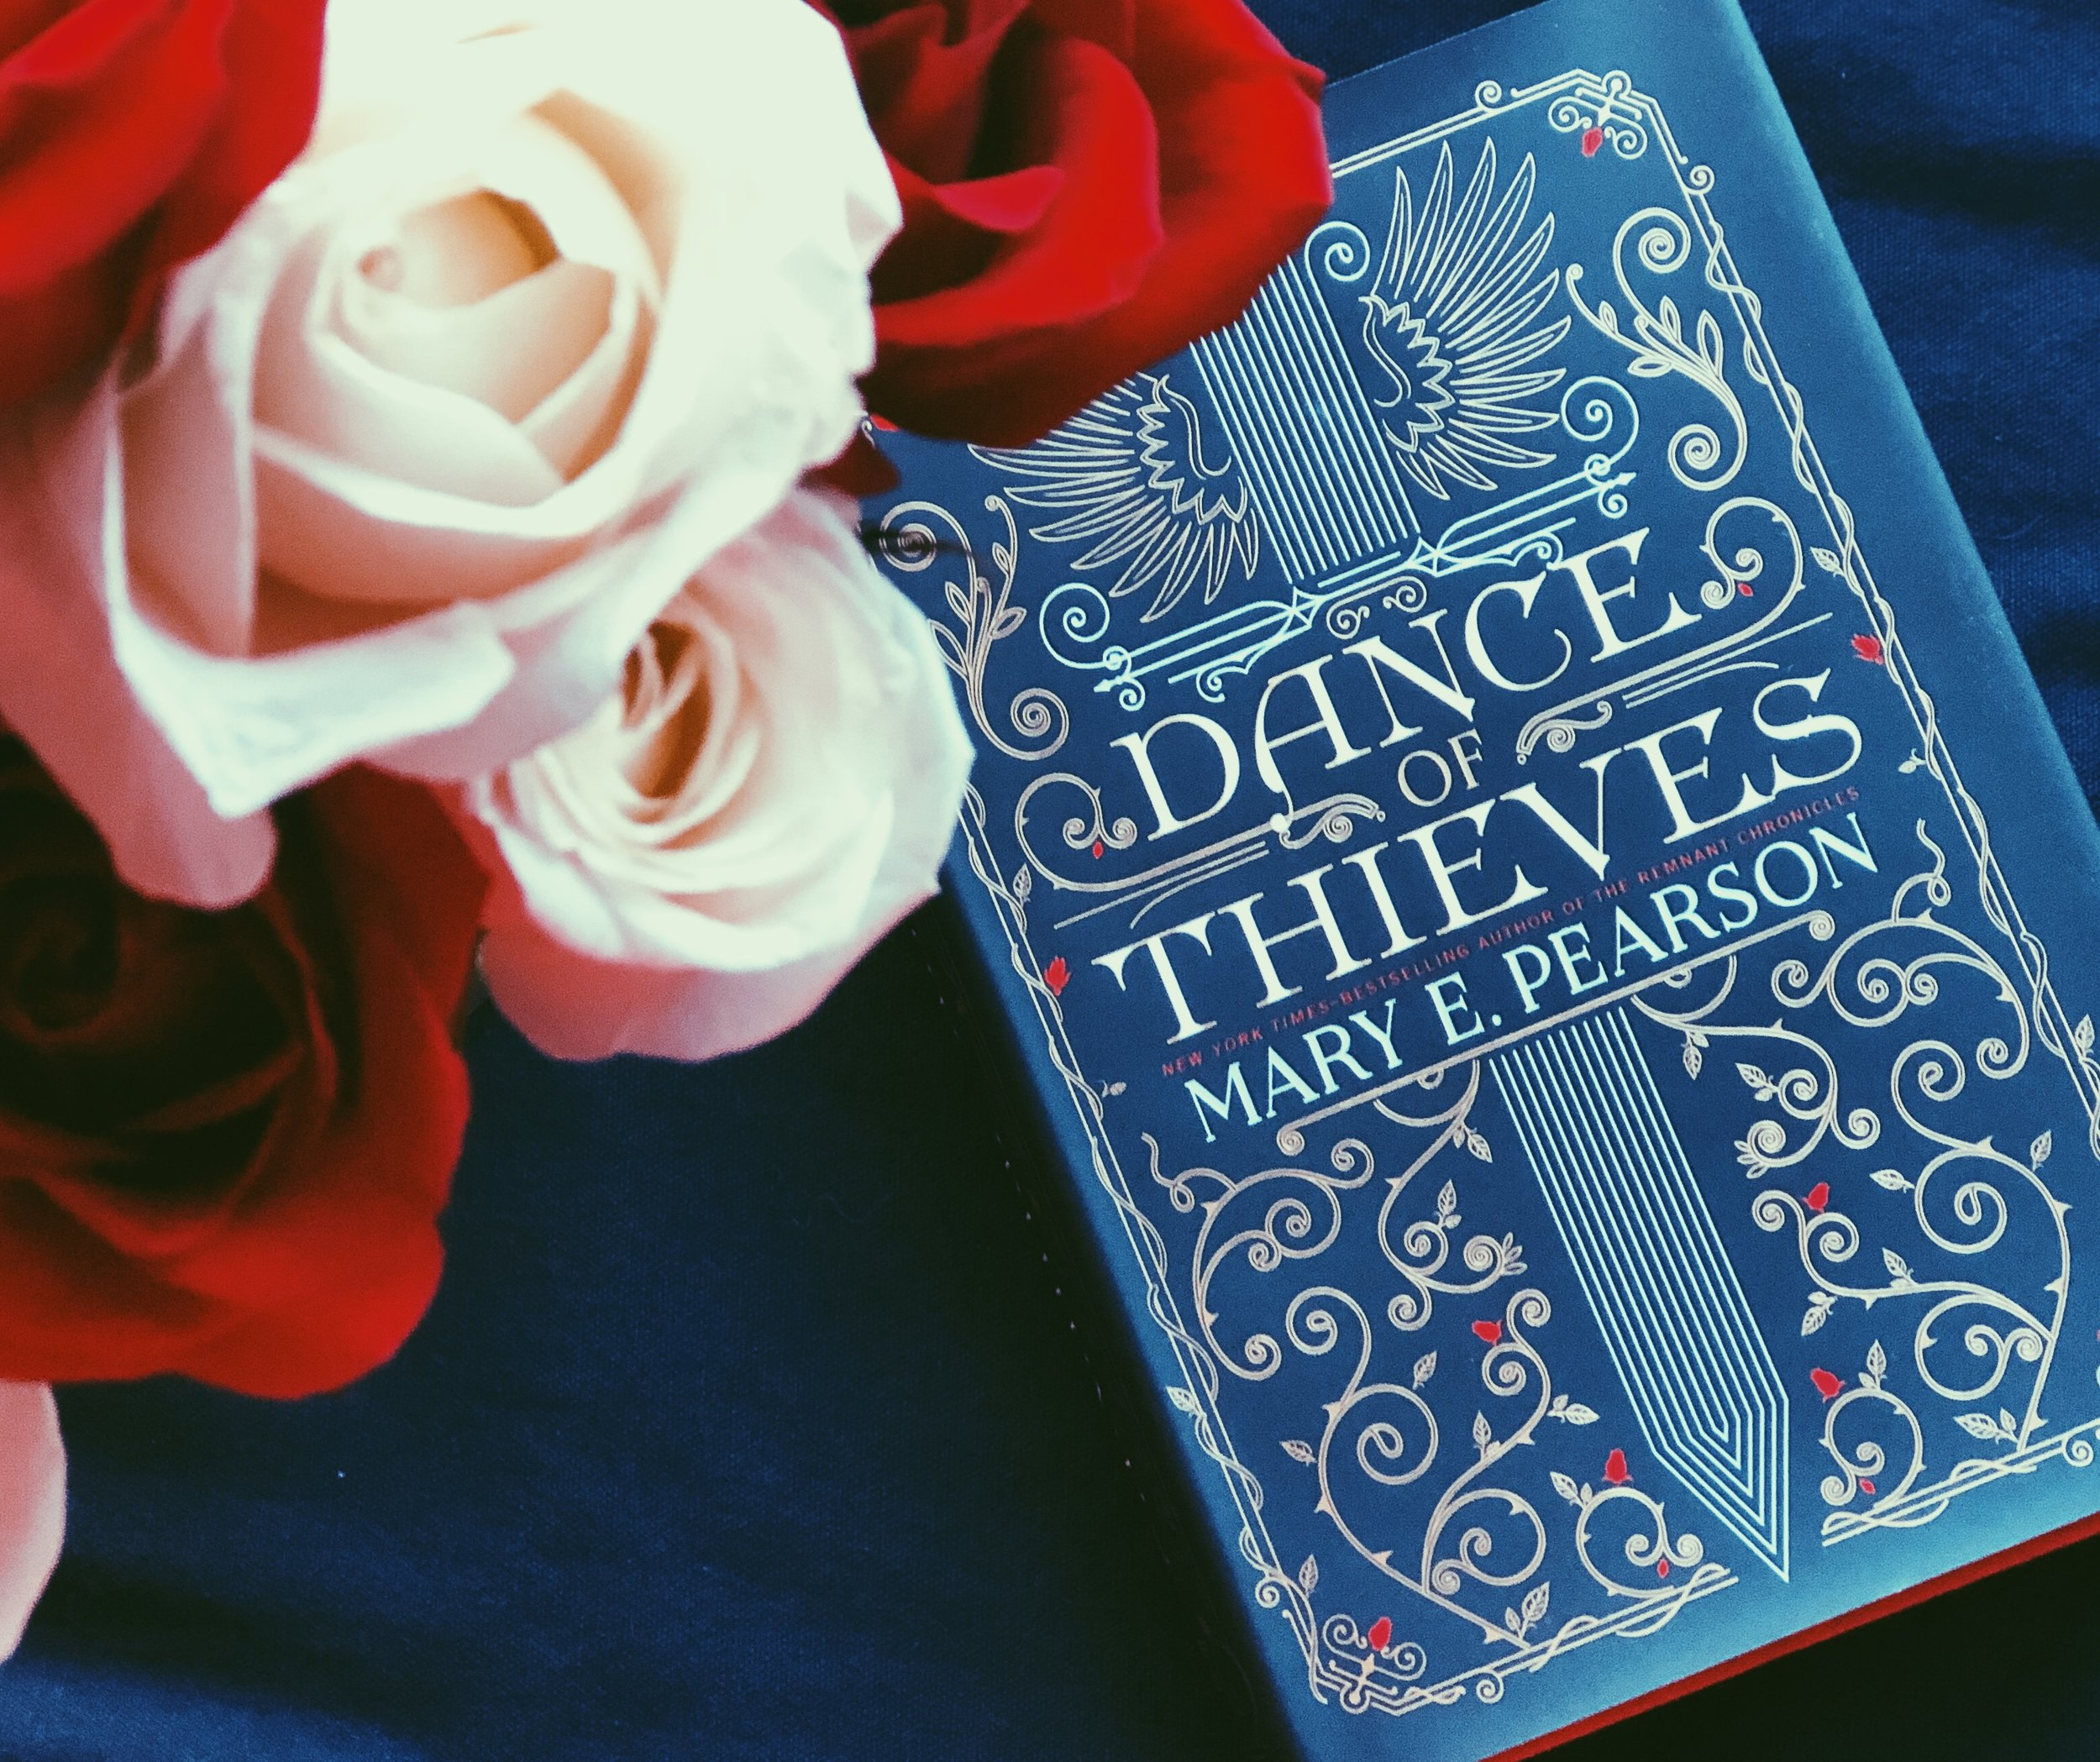 Dance of Thieves  is the first novel in a Duology. Vow of Thieves will be released August 2019.